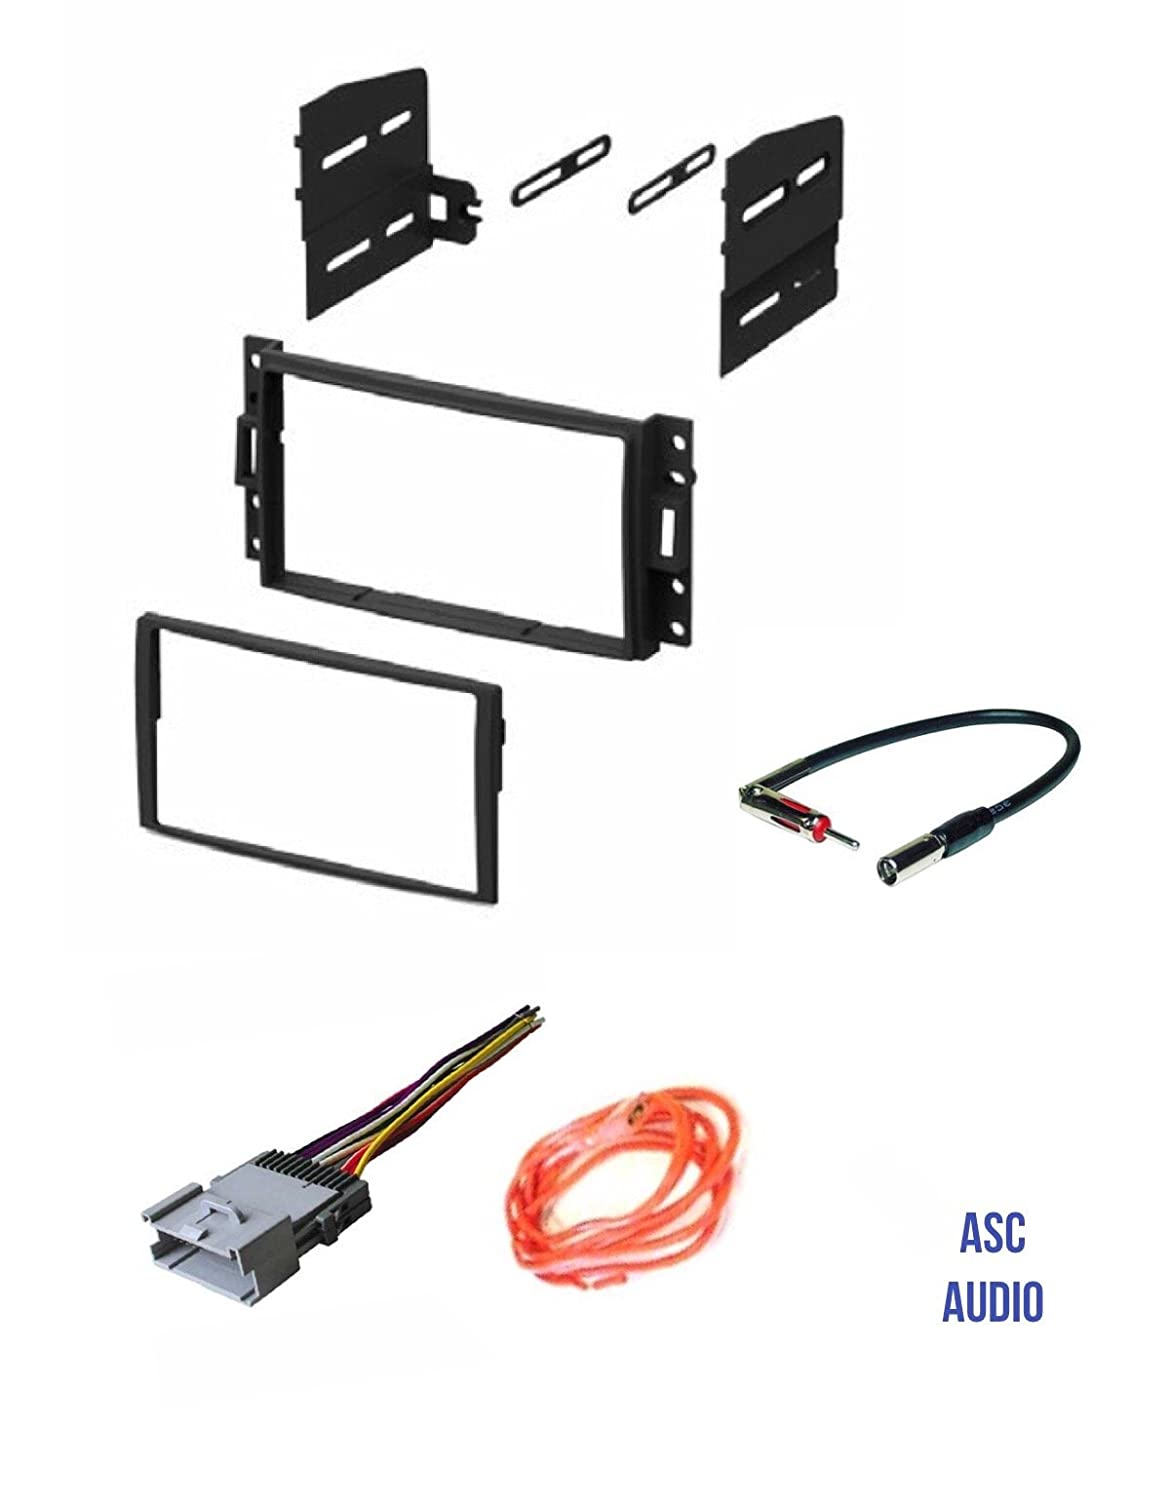 Craig Car Stereo Wiring Harness Great Installation Of Diagram Boss Library Rh 9 Budoshop4you De Trim Panel Removal